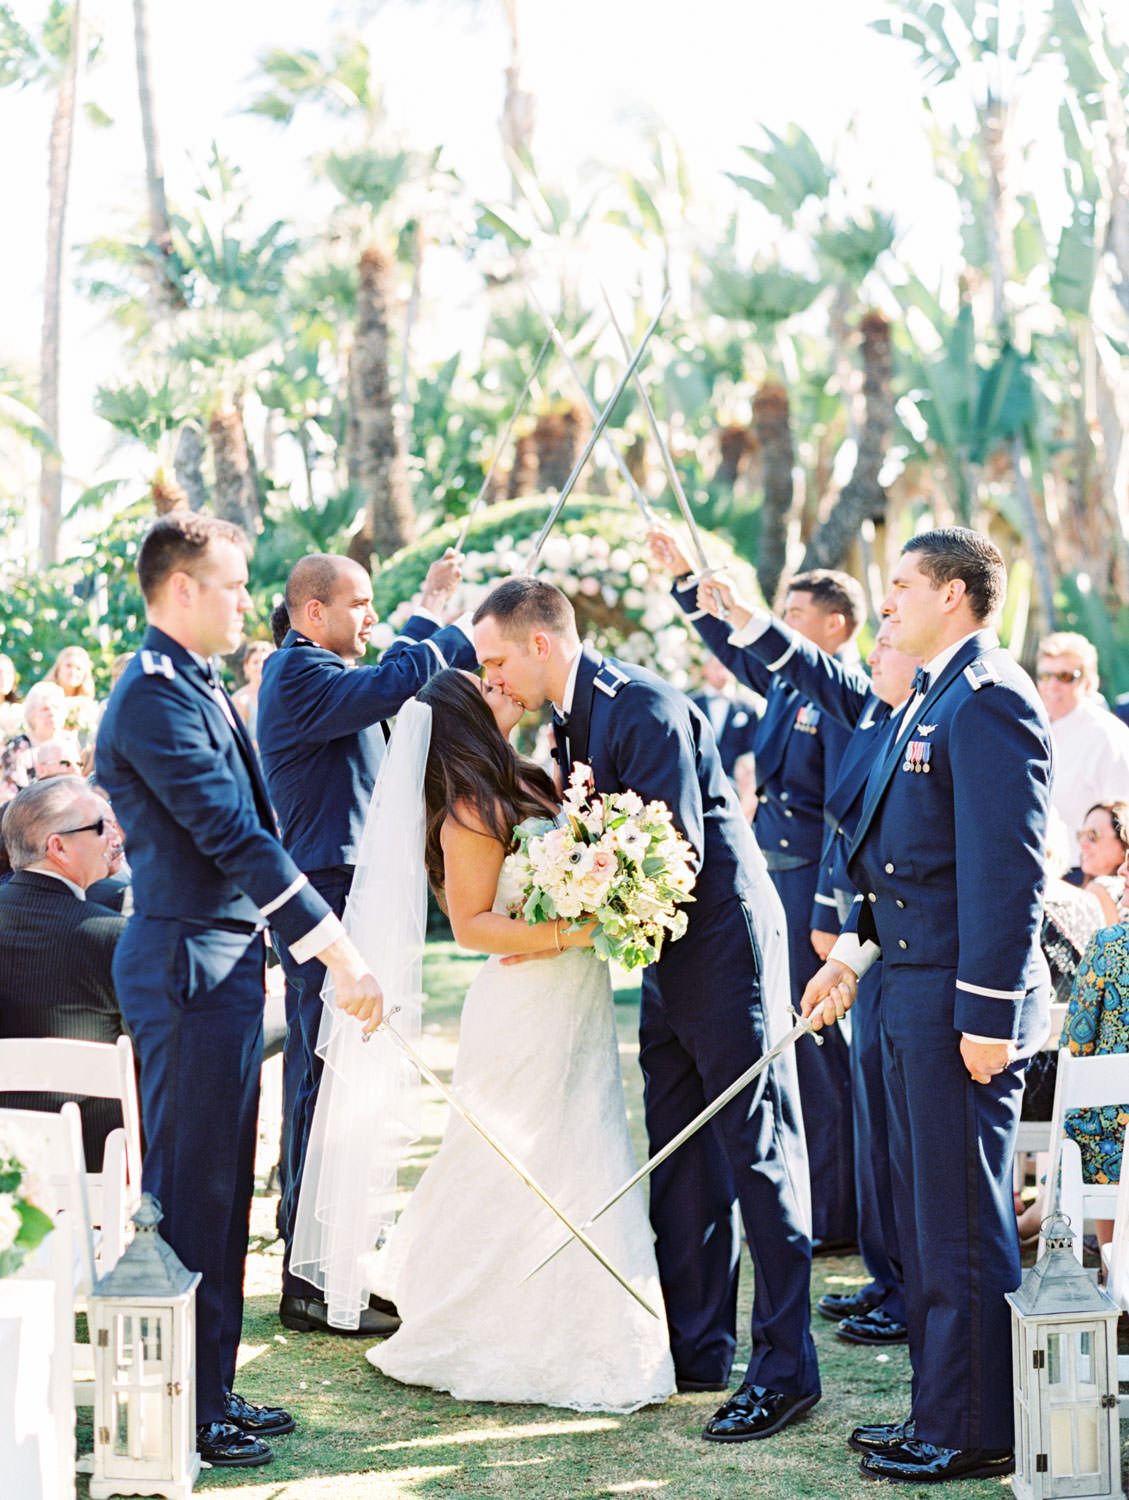 Wedding ceremony Air Force saber arch kiss captured on film in a garden setting with palm trees. Wedding at Humphreys Half Moon Inn by Cavin Elizabeth Photography